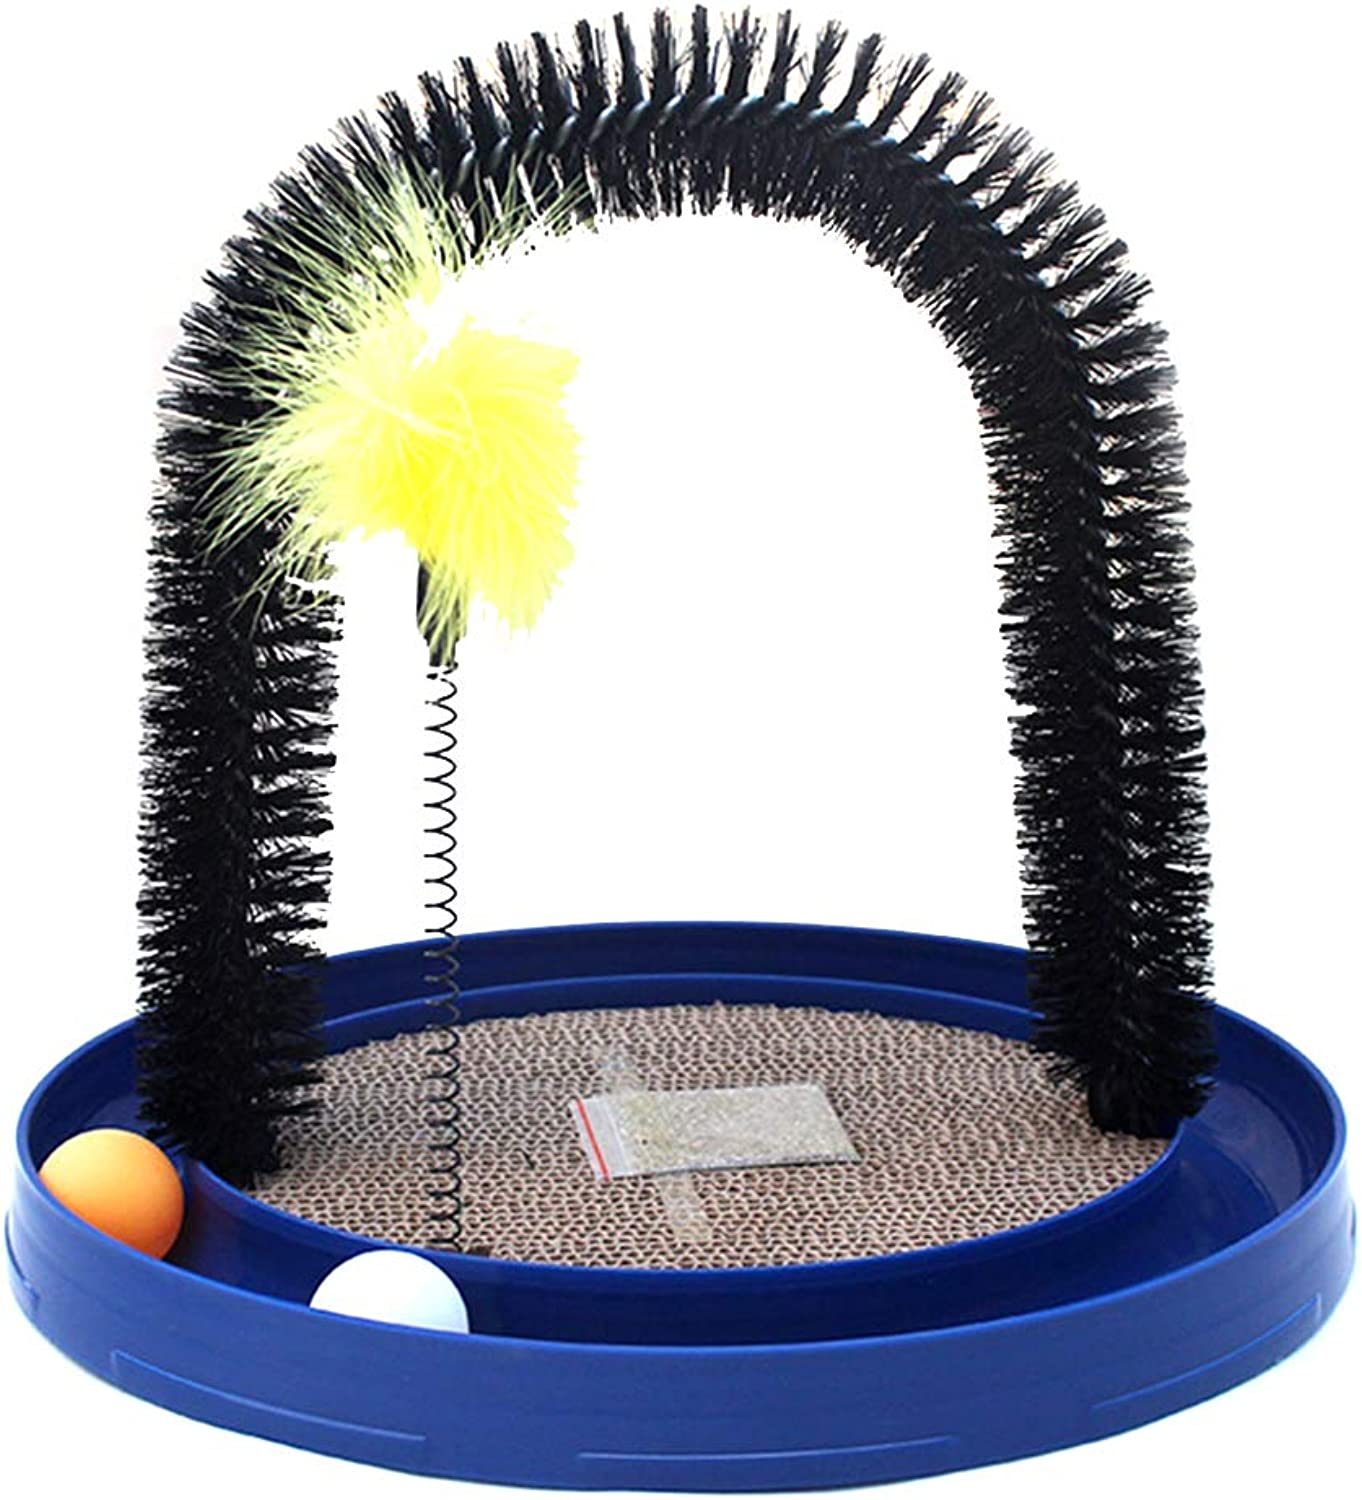 Cat Toy Funny Cat Carousel Cat MultiFunction Hair Dryer Disc Massage Cat Scratch Board,bluee